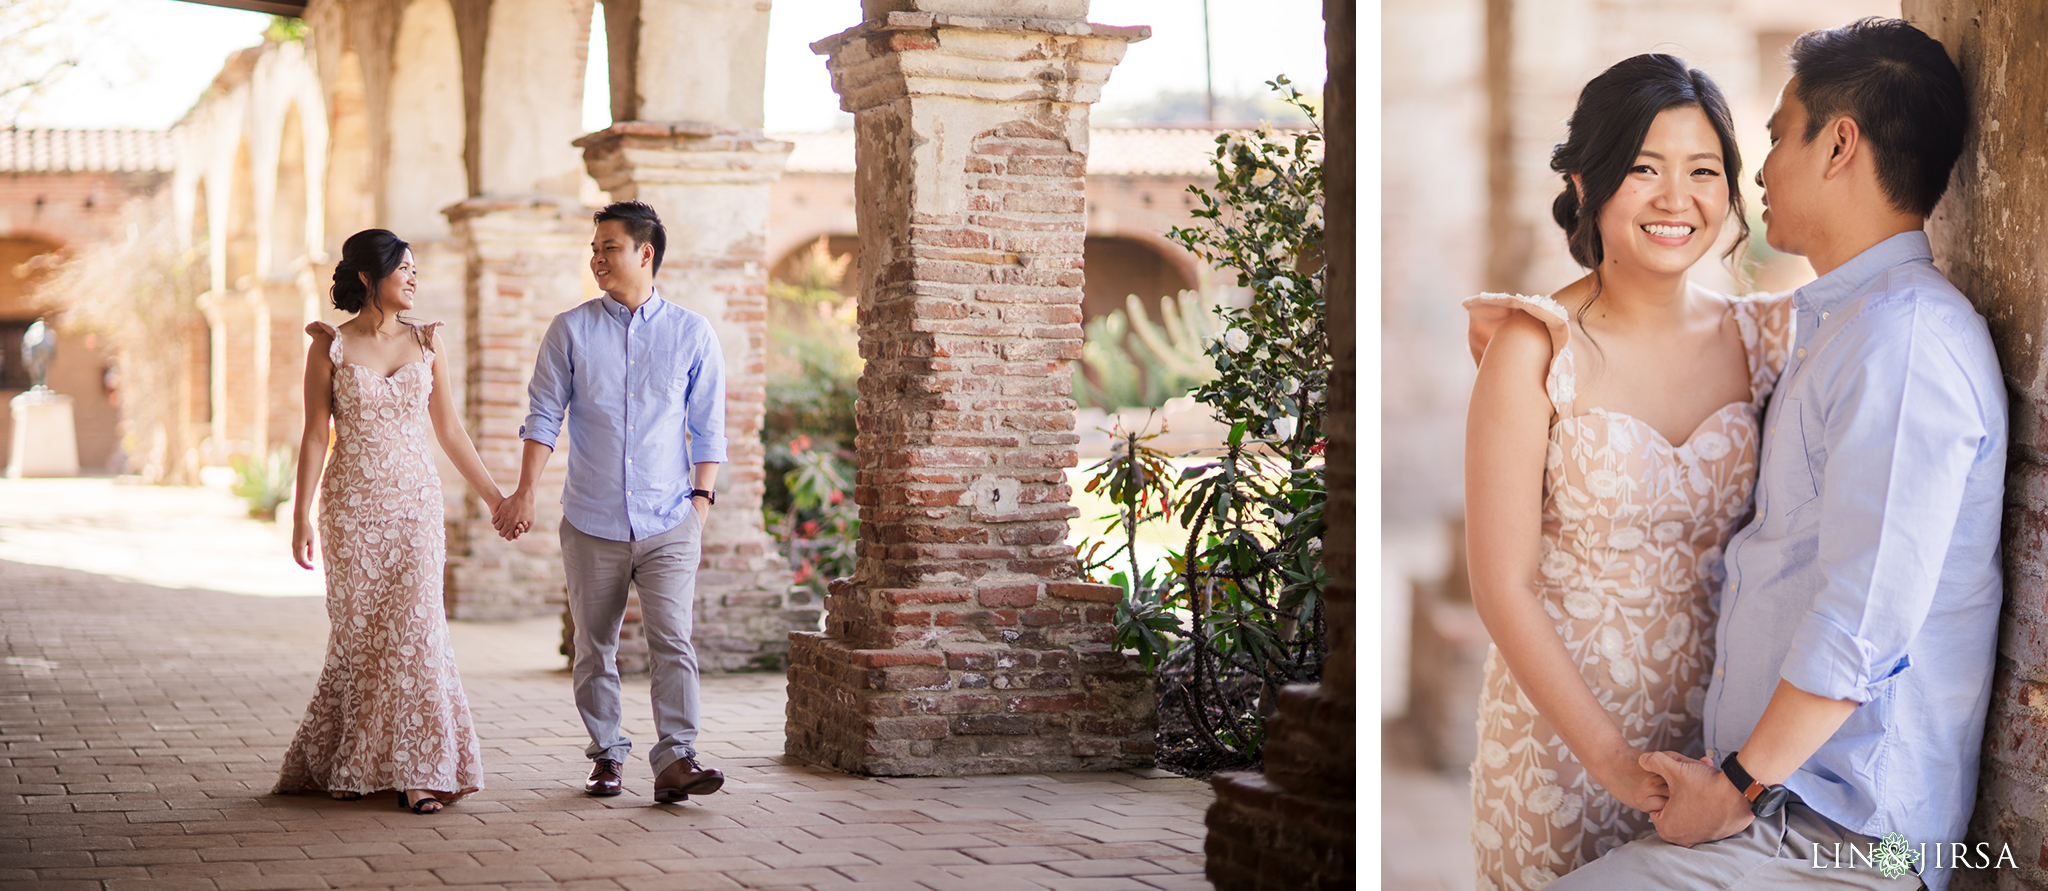 03 Mission San Juan Capistrano Engagement Photography 1